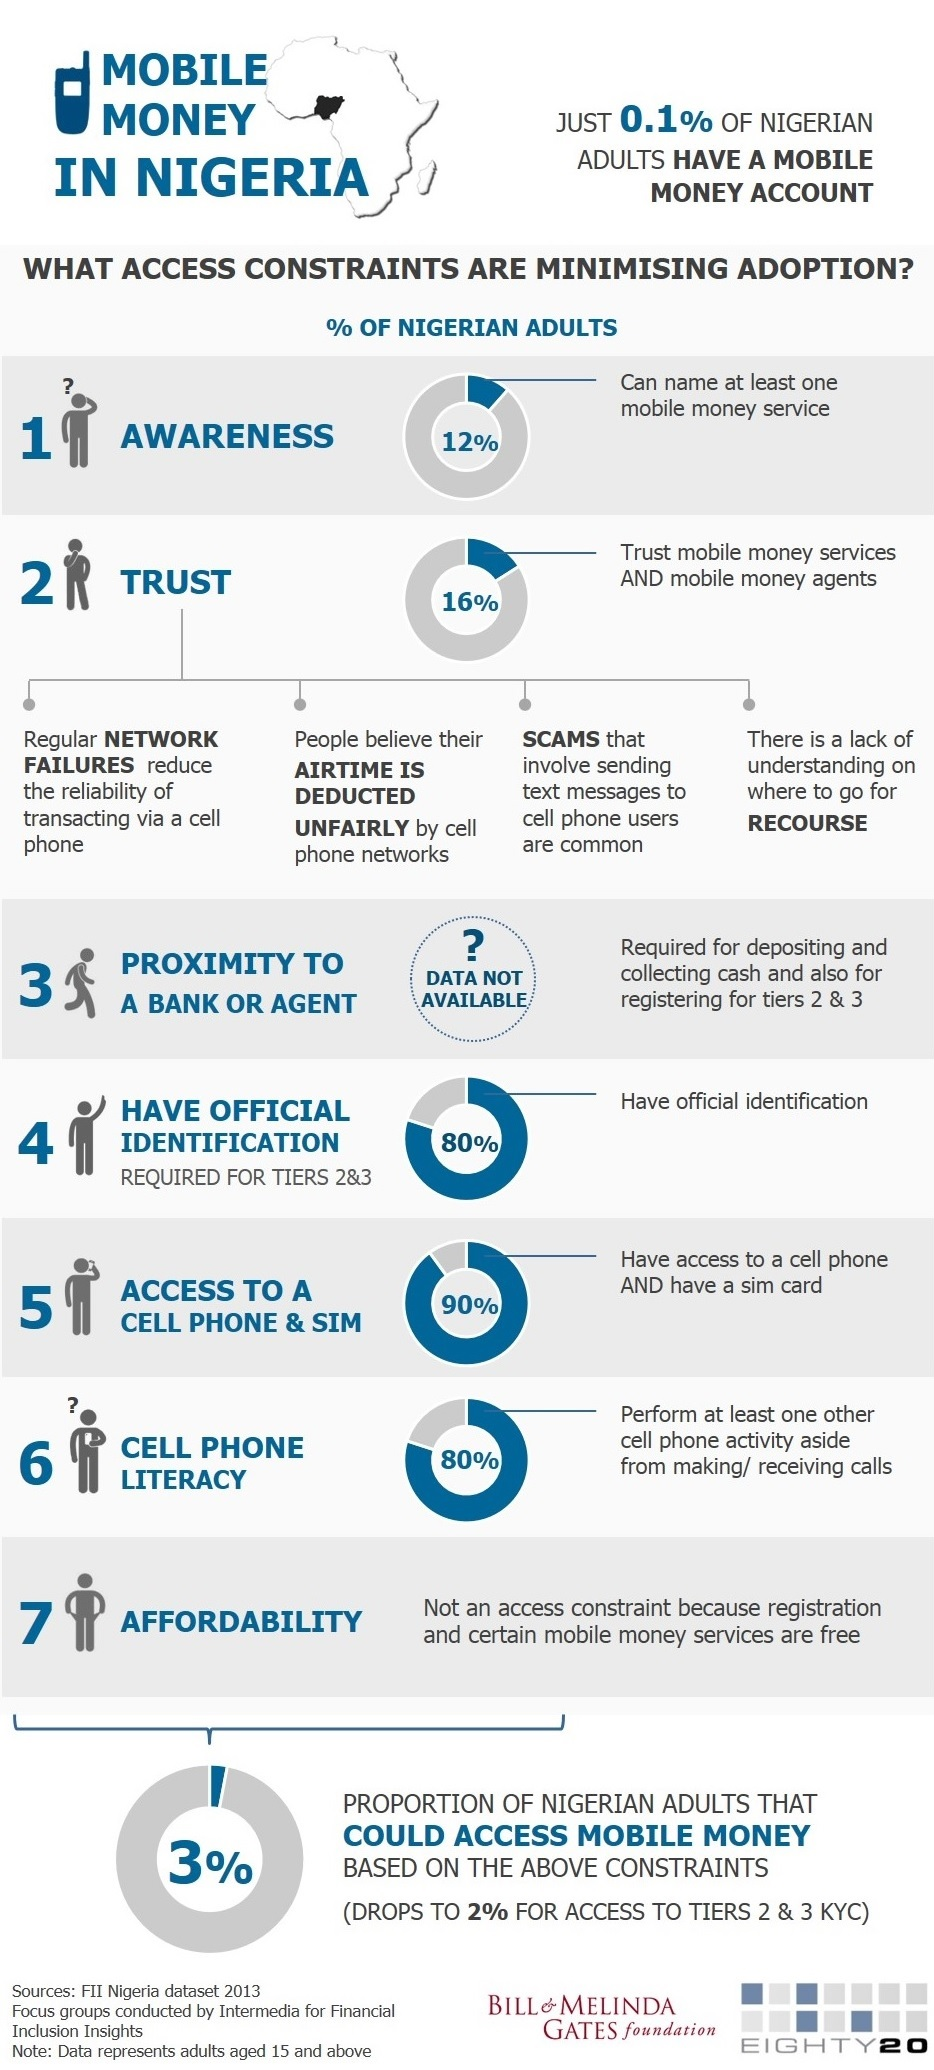 Mobile Money in Nigeria_Access Constraints